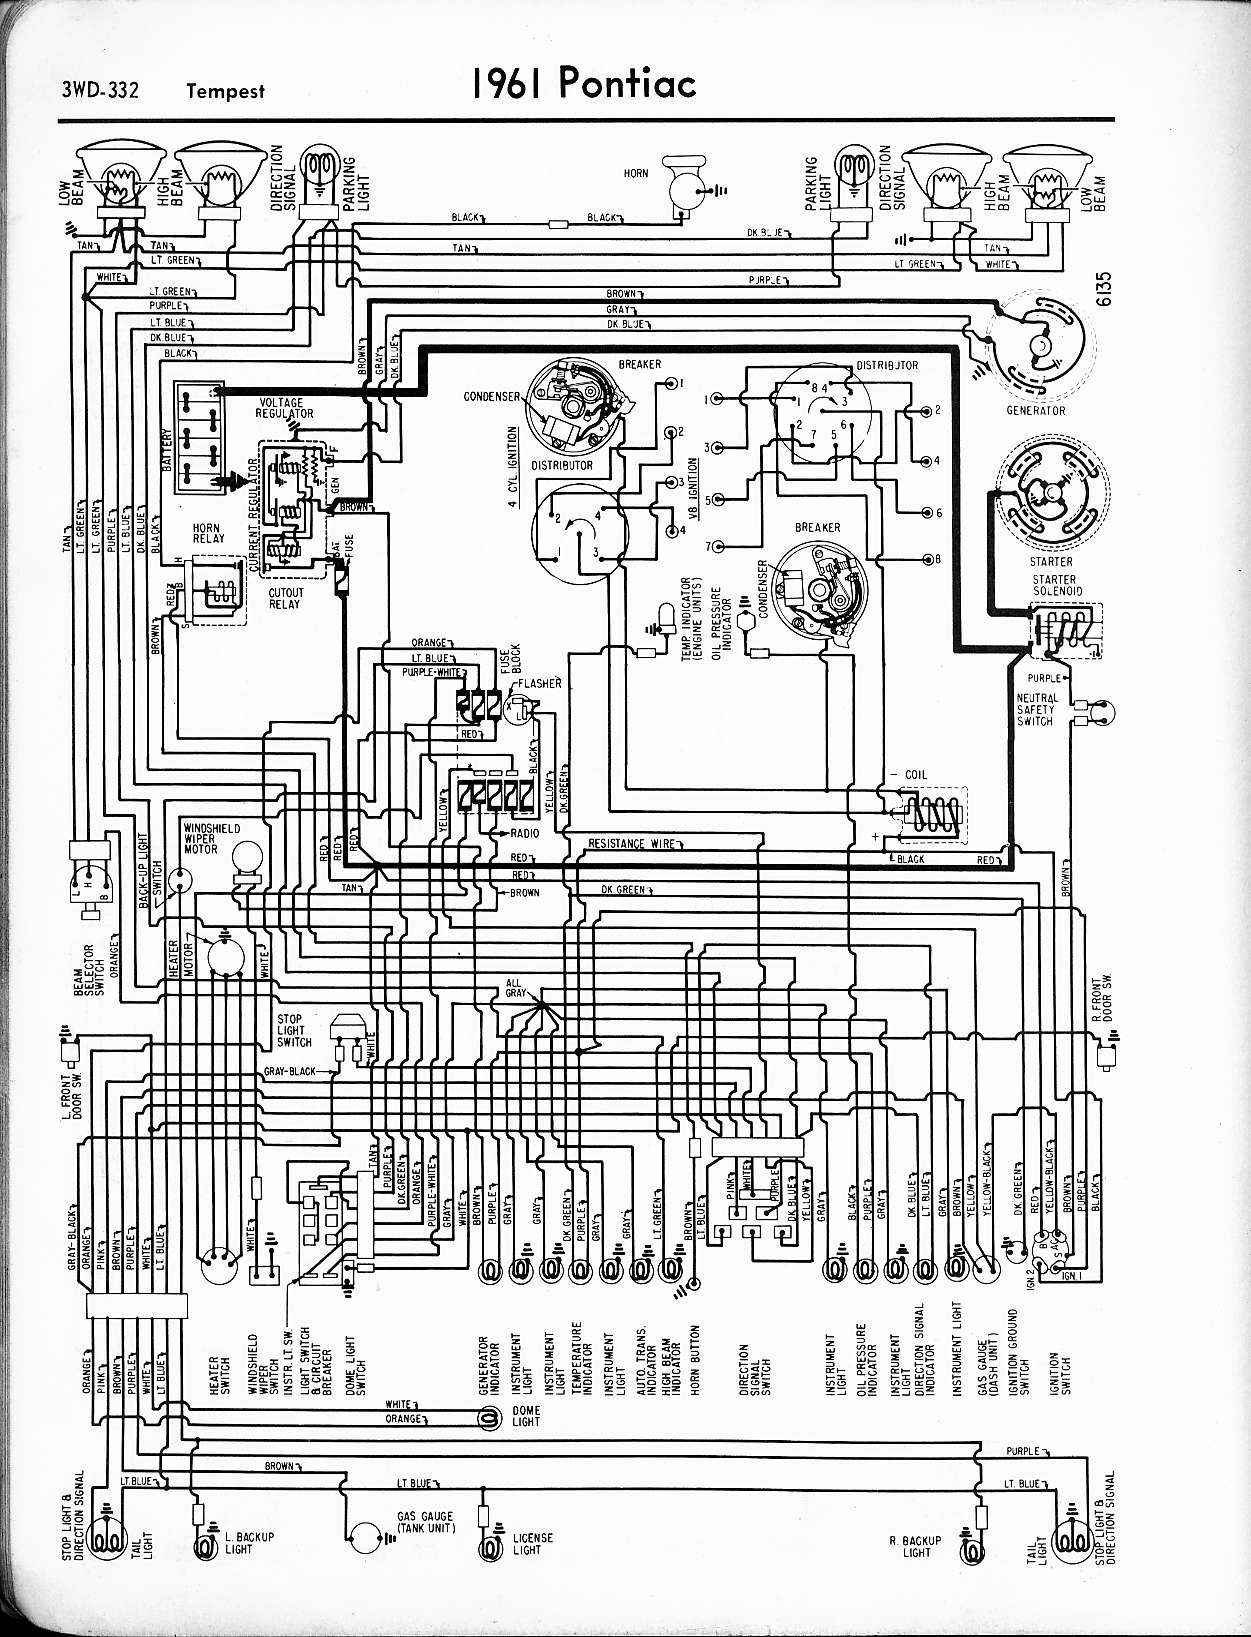 hight resolution of wire diagram for pontiac wiring diagram imgwire diagram for pontiac wiring diagram name wiring diagram for